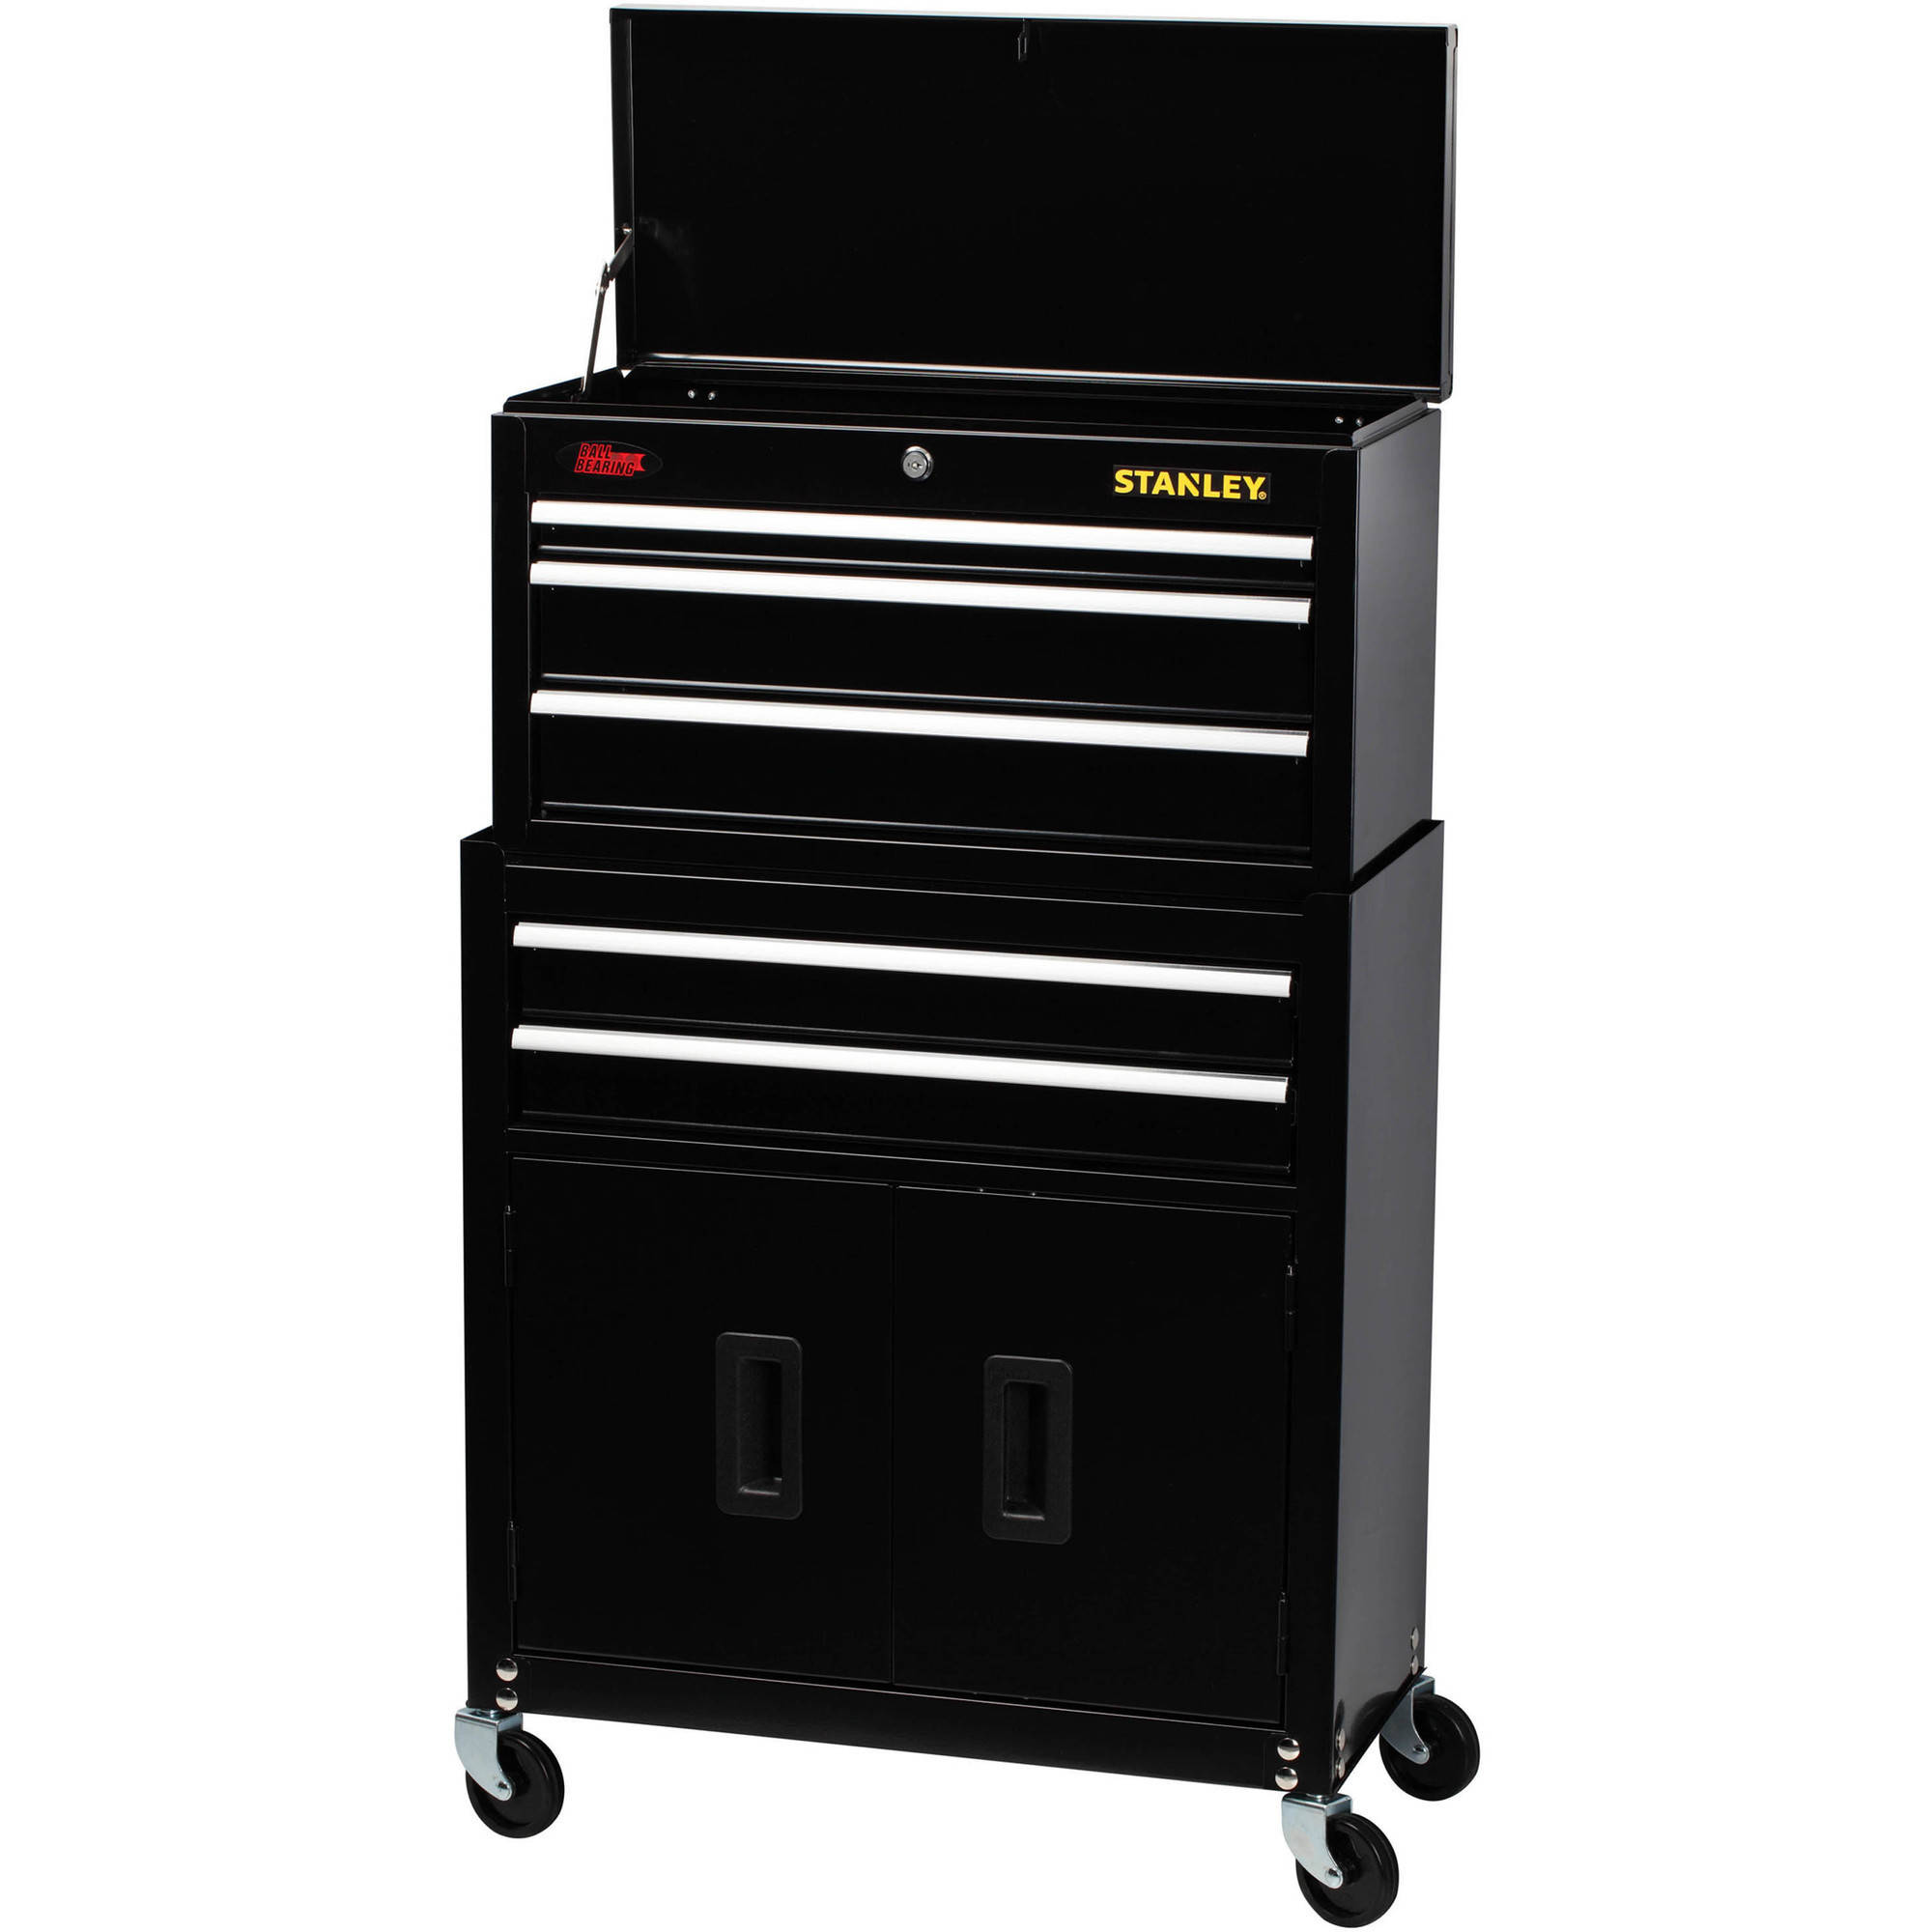 Stanley 5-Drawer Chest and Cabinet Combo with Bi-Fold Doors, Black